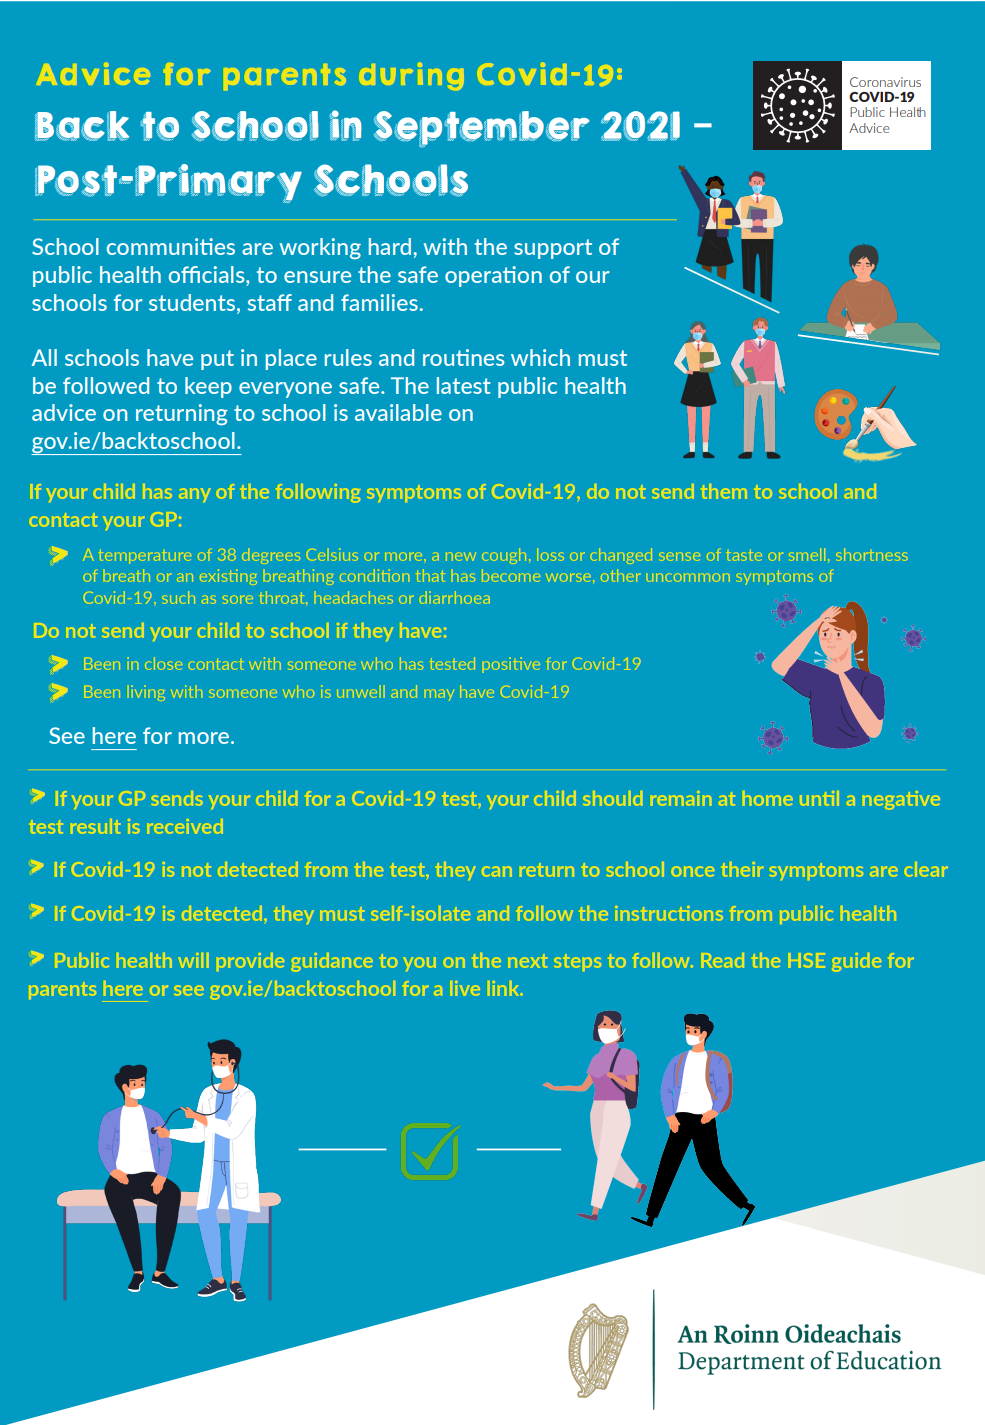 Back to School Advice for Parents During Covid 19